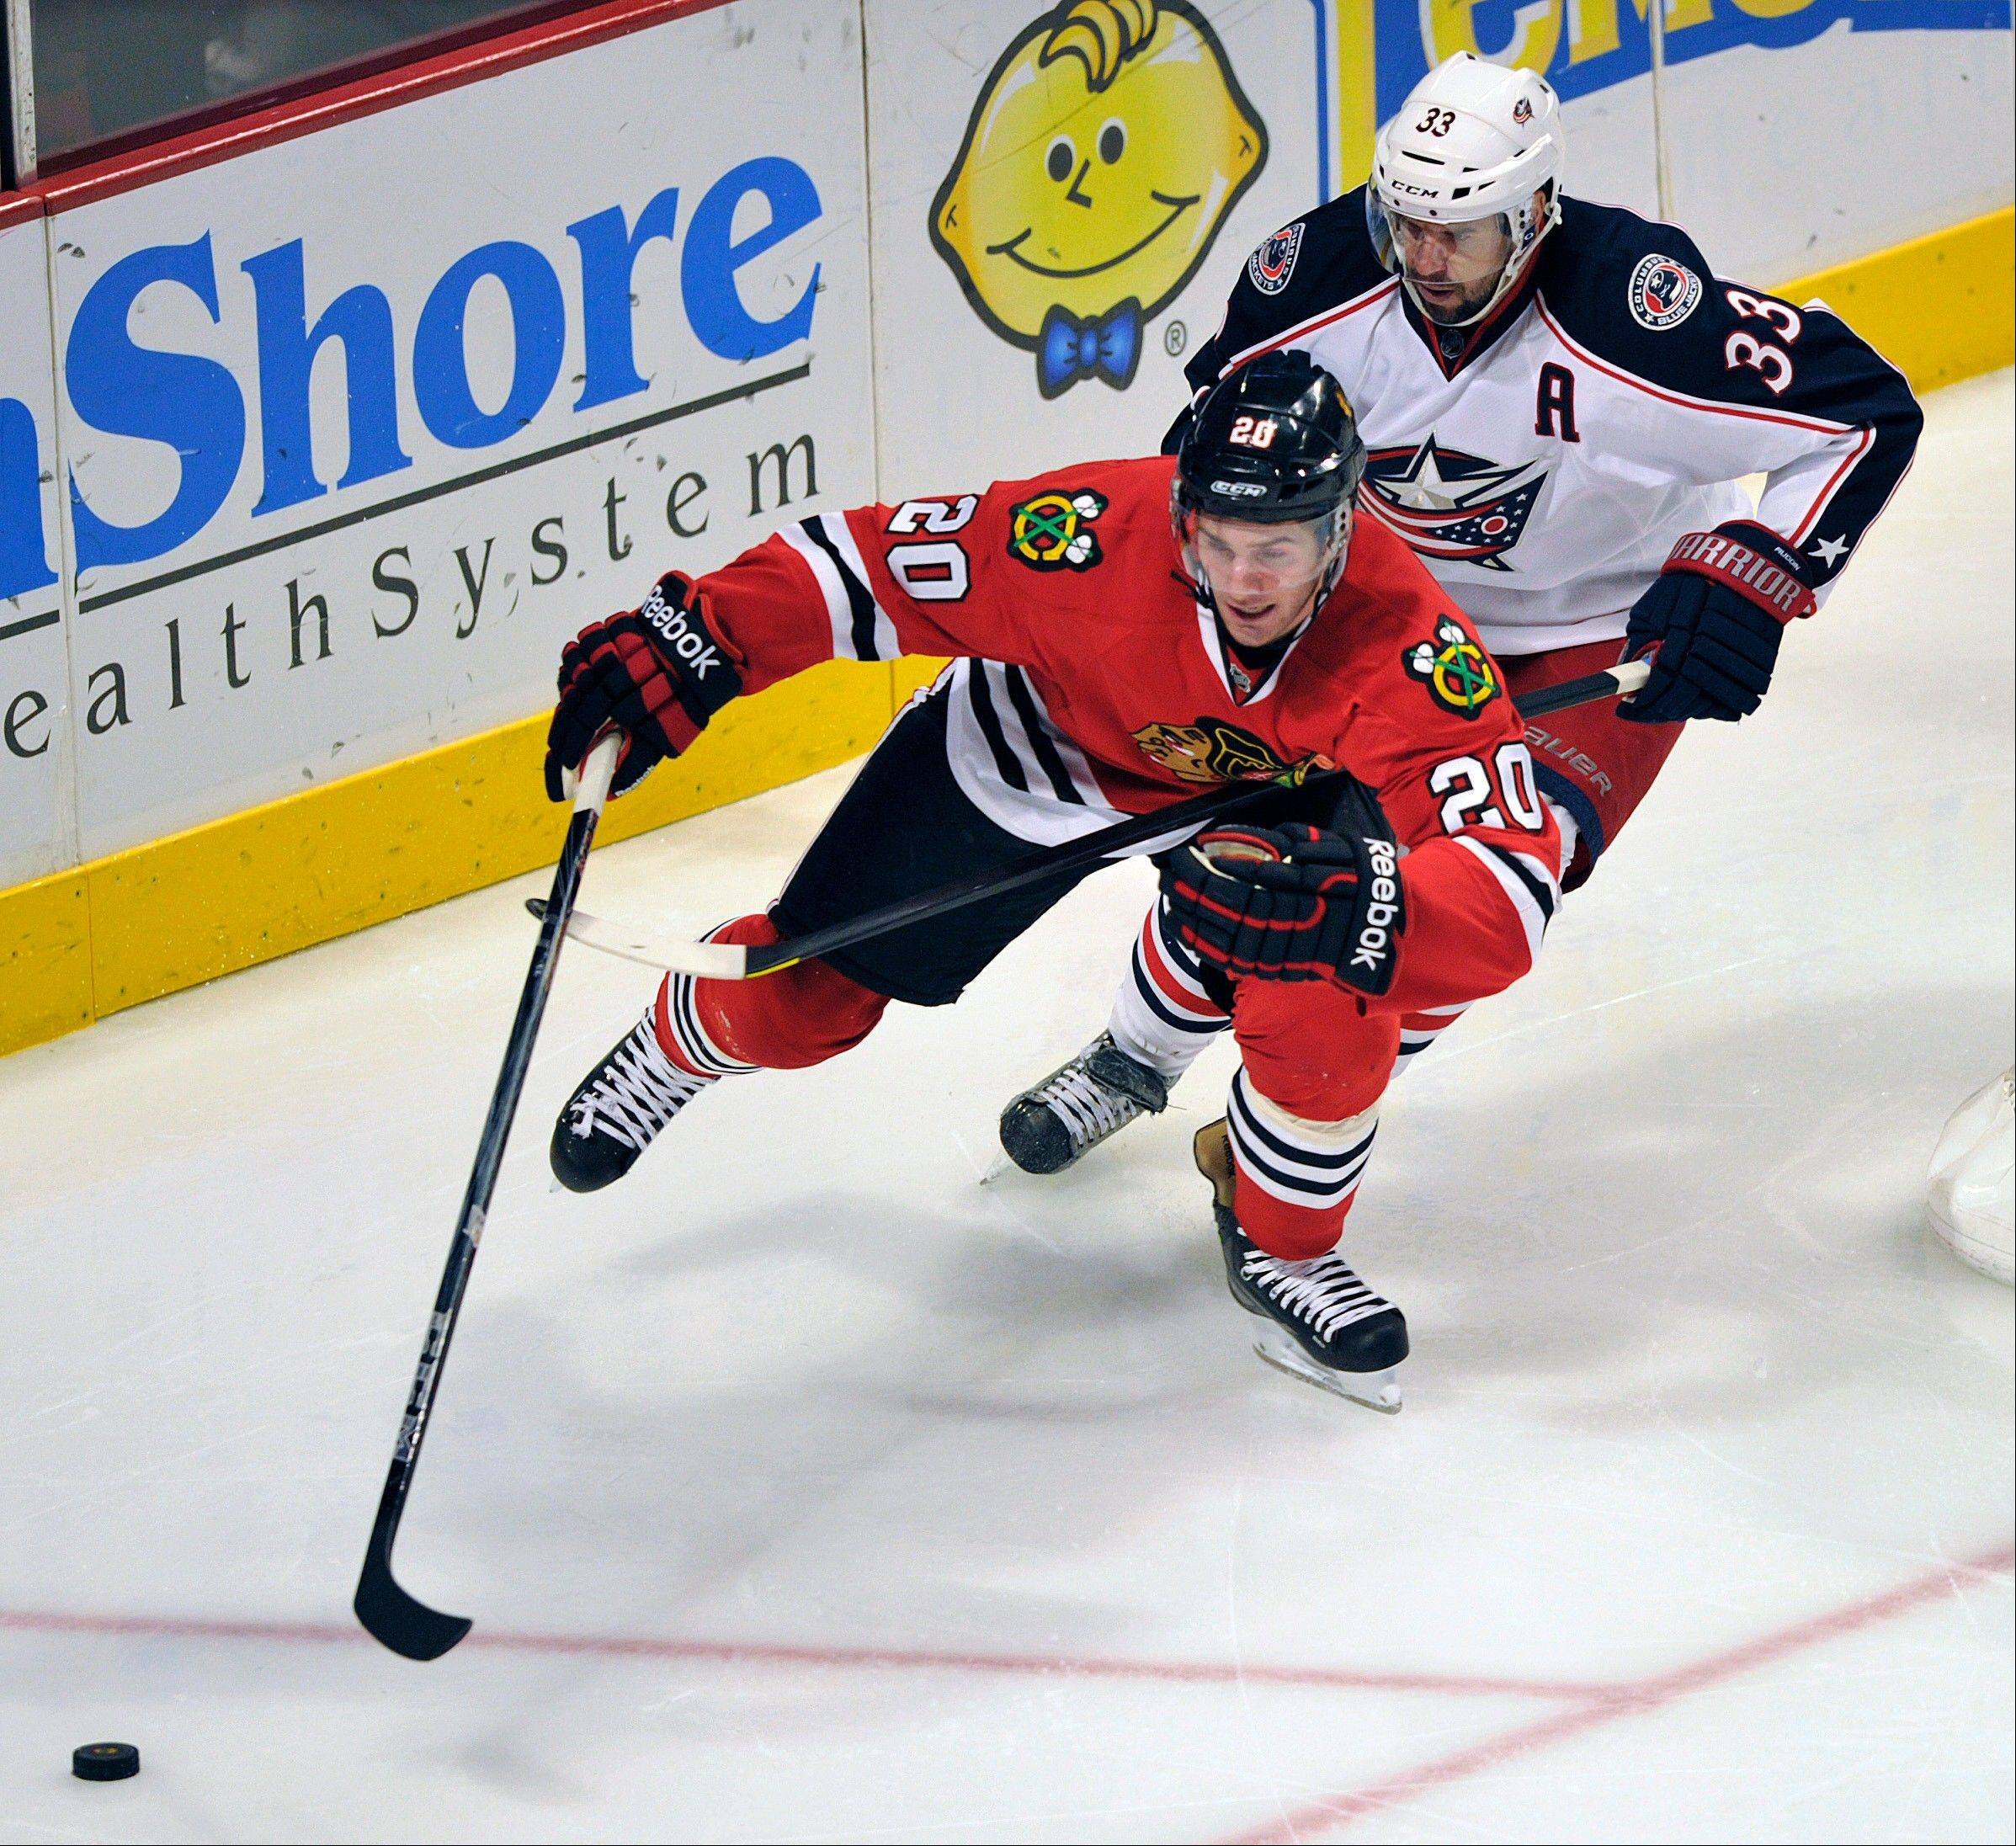 Blackhawks winger Brandon Saad skates towards the puck as Columbus Blue Jackets� Adrian Aucoin defends during the third period of an NHL hockey game Sunday, Feb. 24, 2013, in Chicago. Chicago won 1-0.